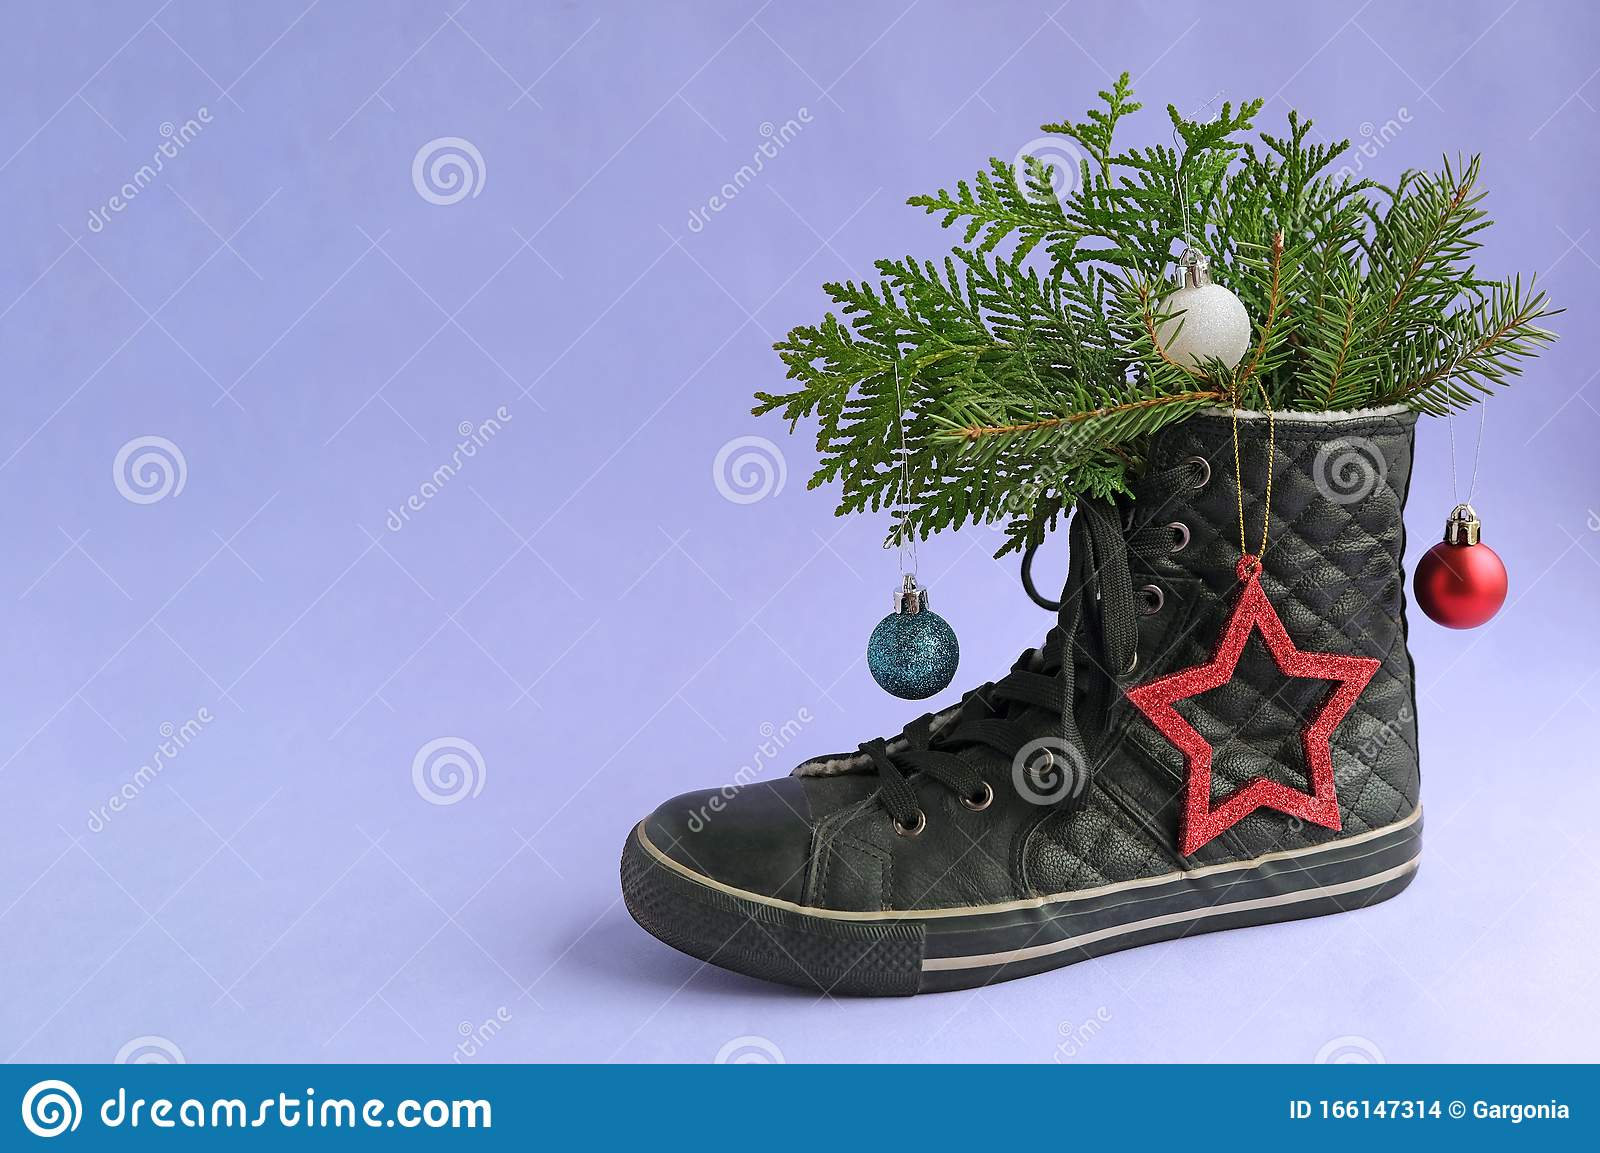 Alternative Christmas Tree Made From Modern Fasion Shoe Boot And Fir Coniferous Branches With Toys On Blue Background Merry Xmas Stock Photo Image Of Present Tree 166147314